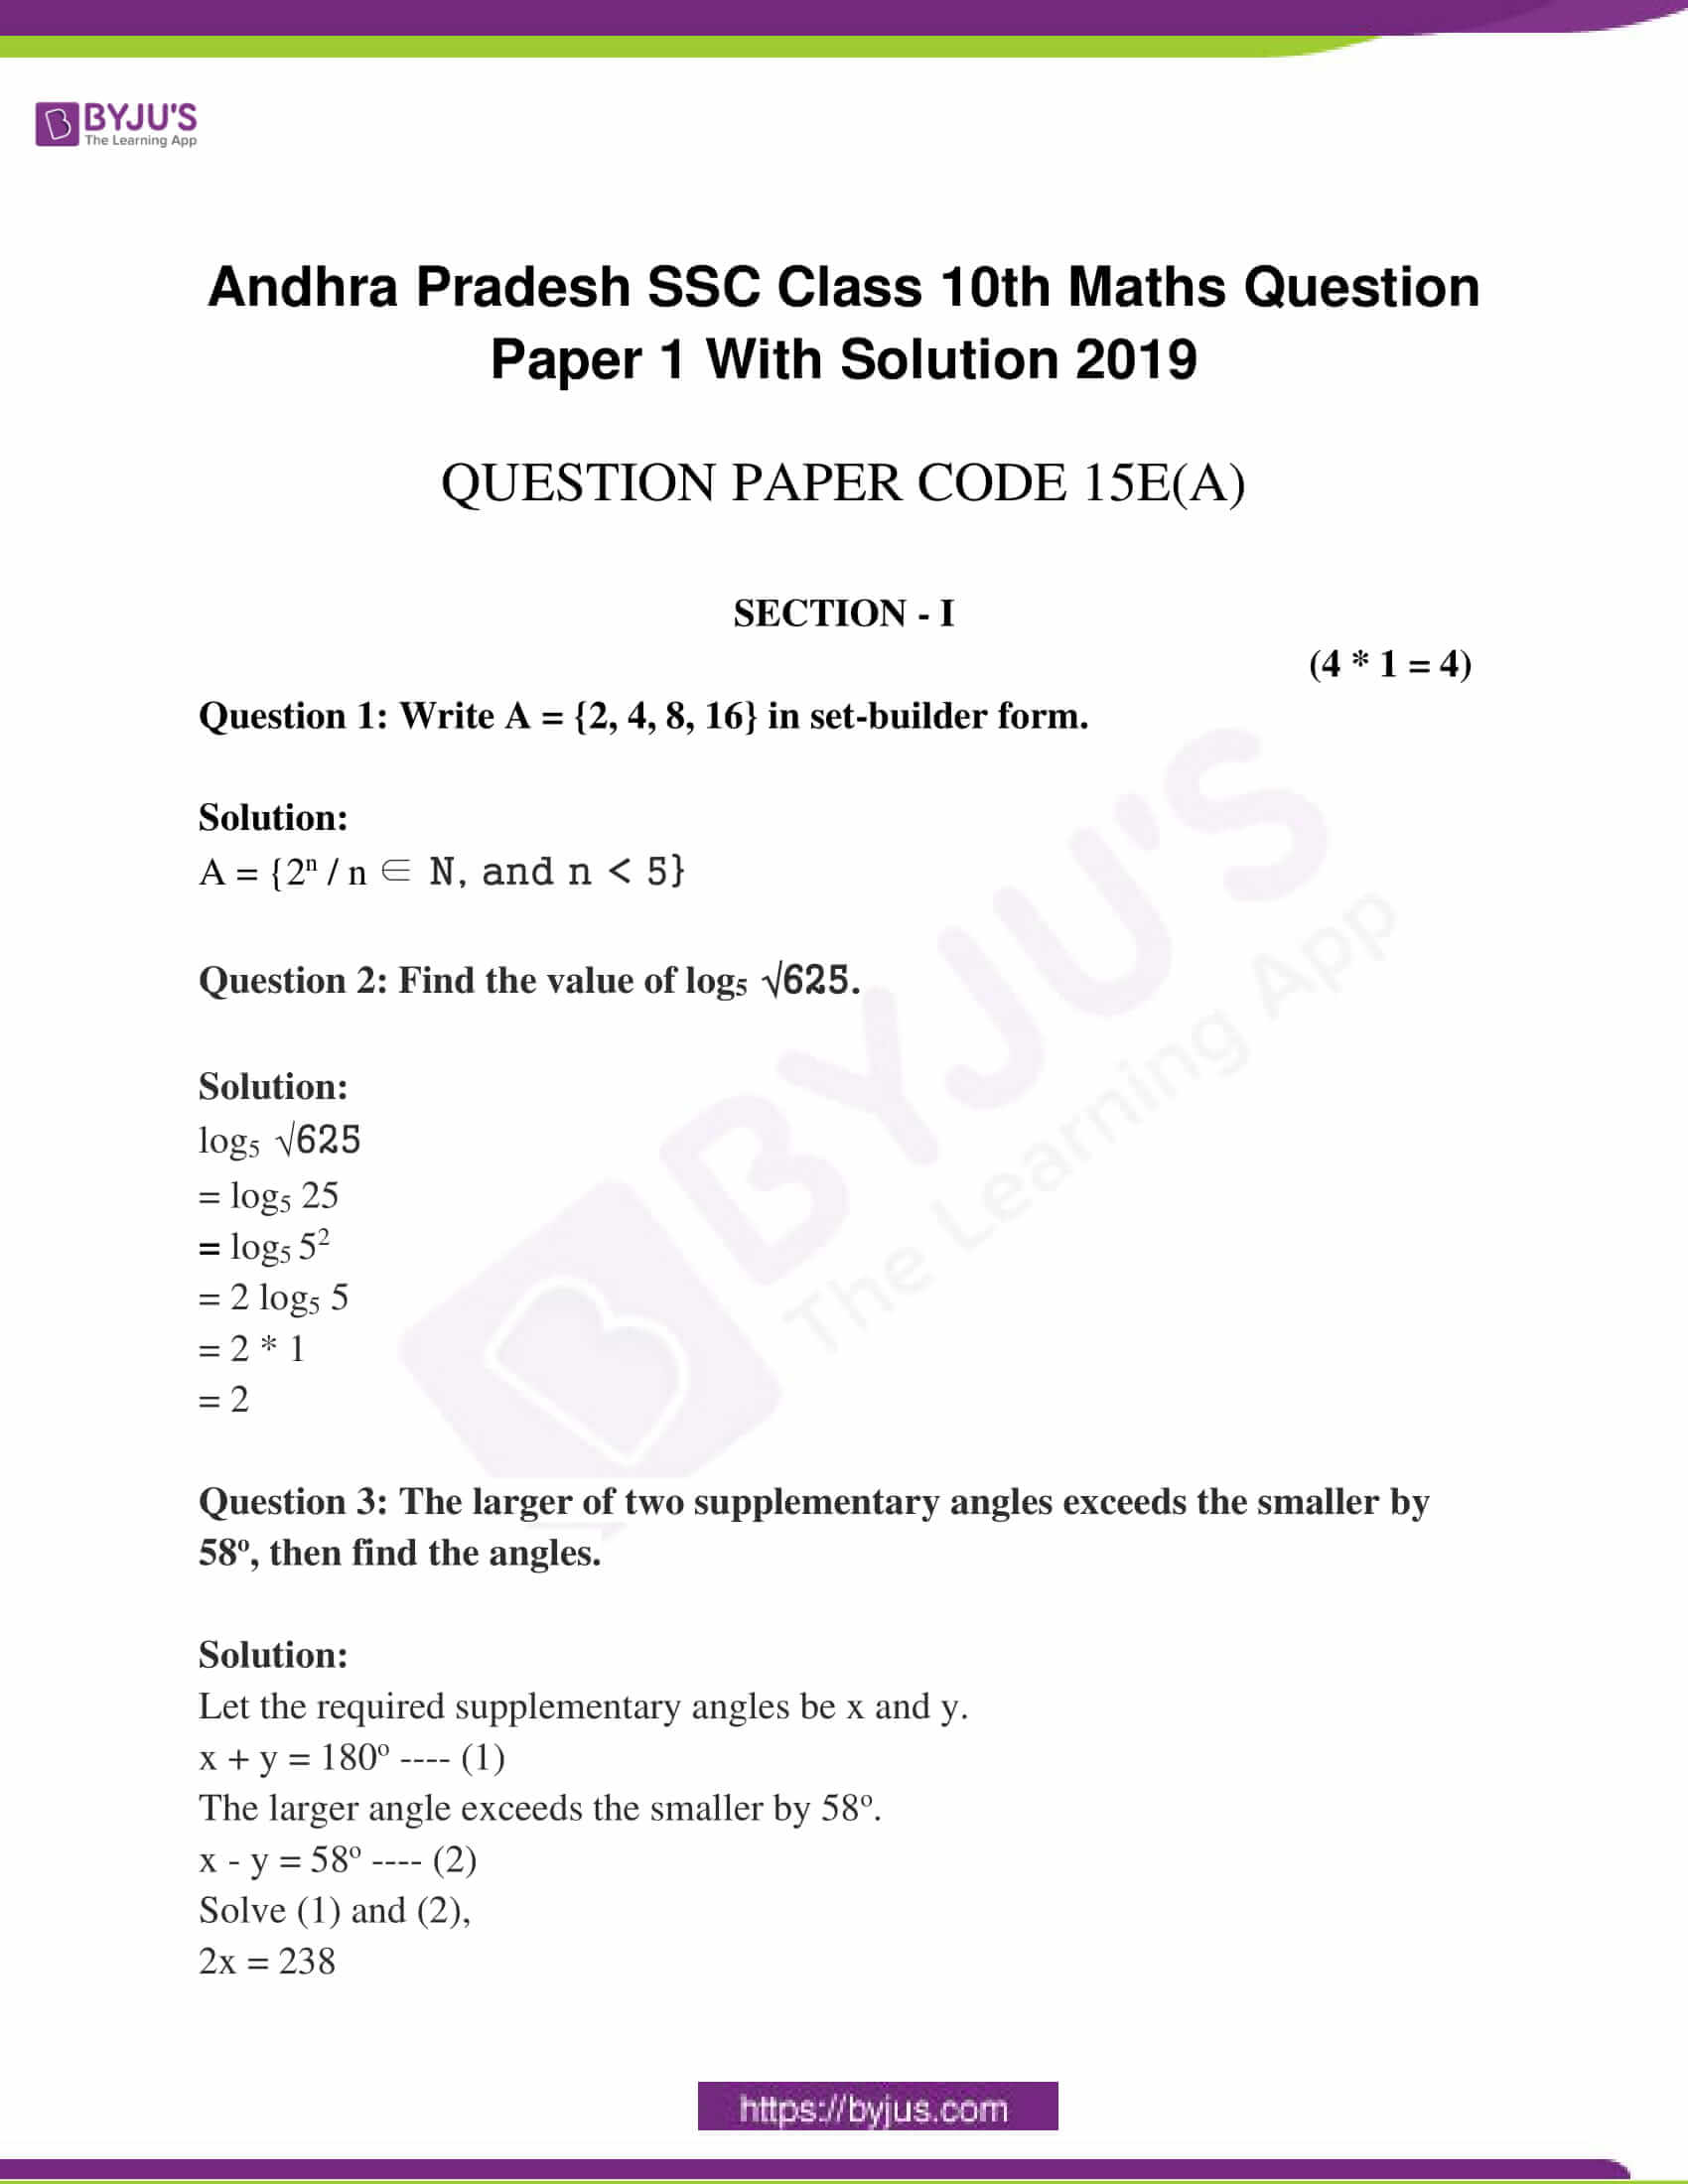 ap class 10 maths question paper 1 sol march 2019 01